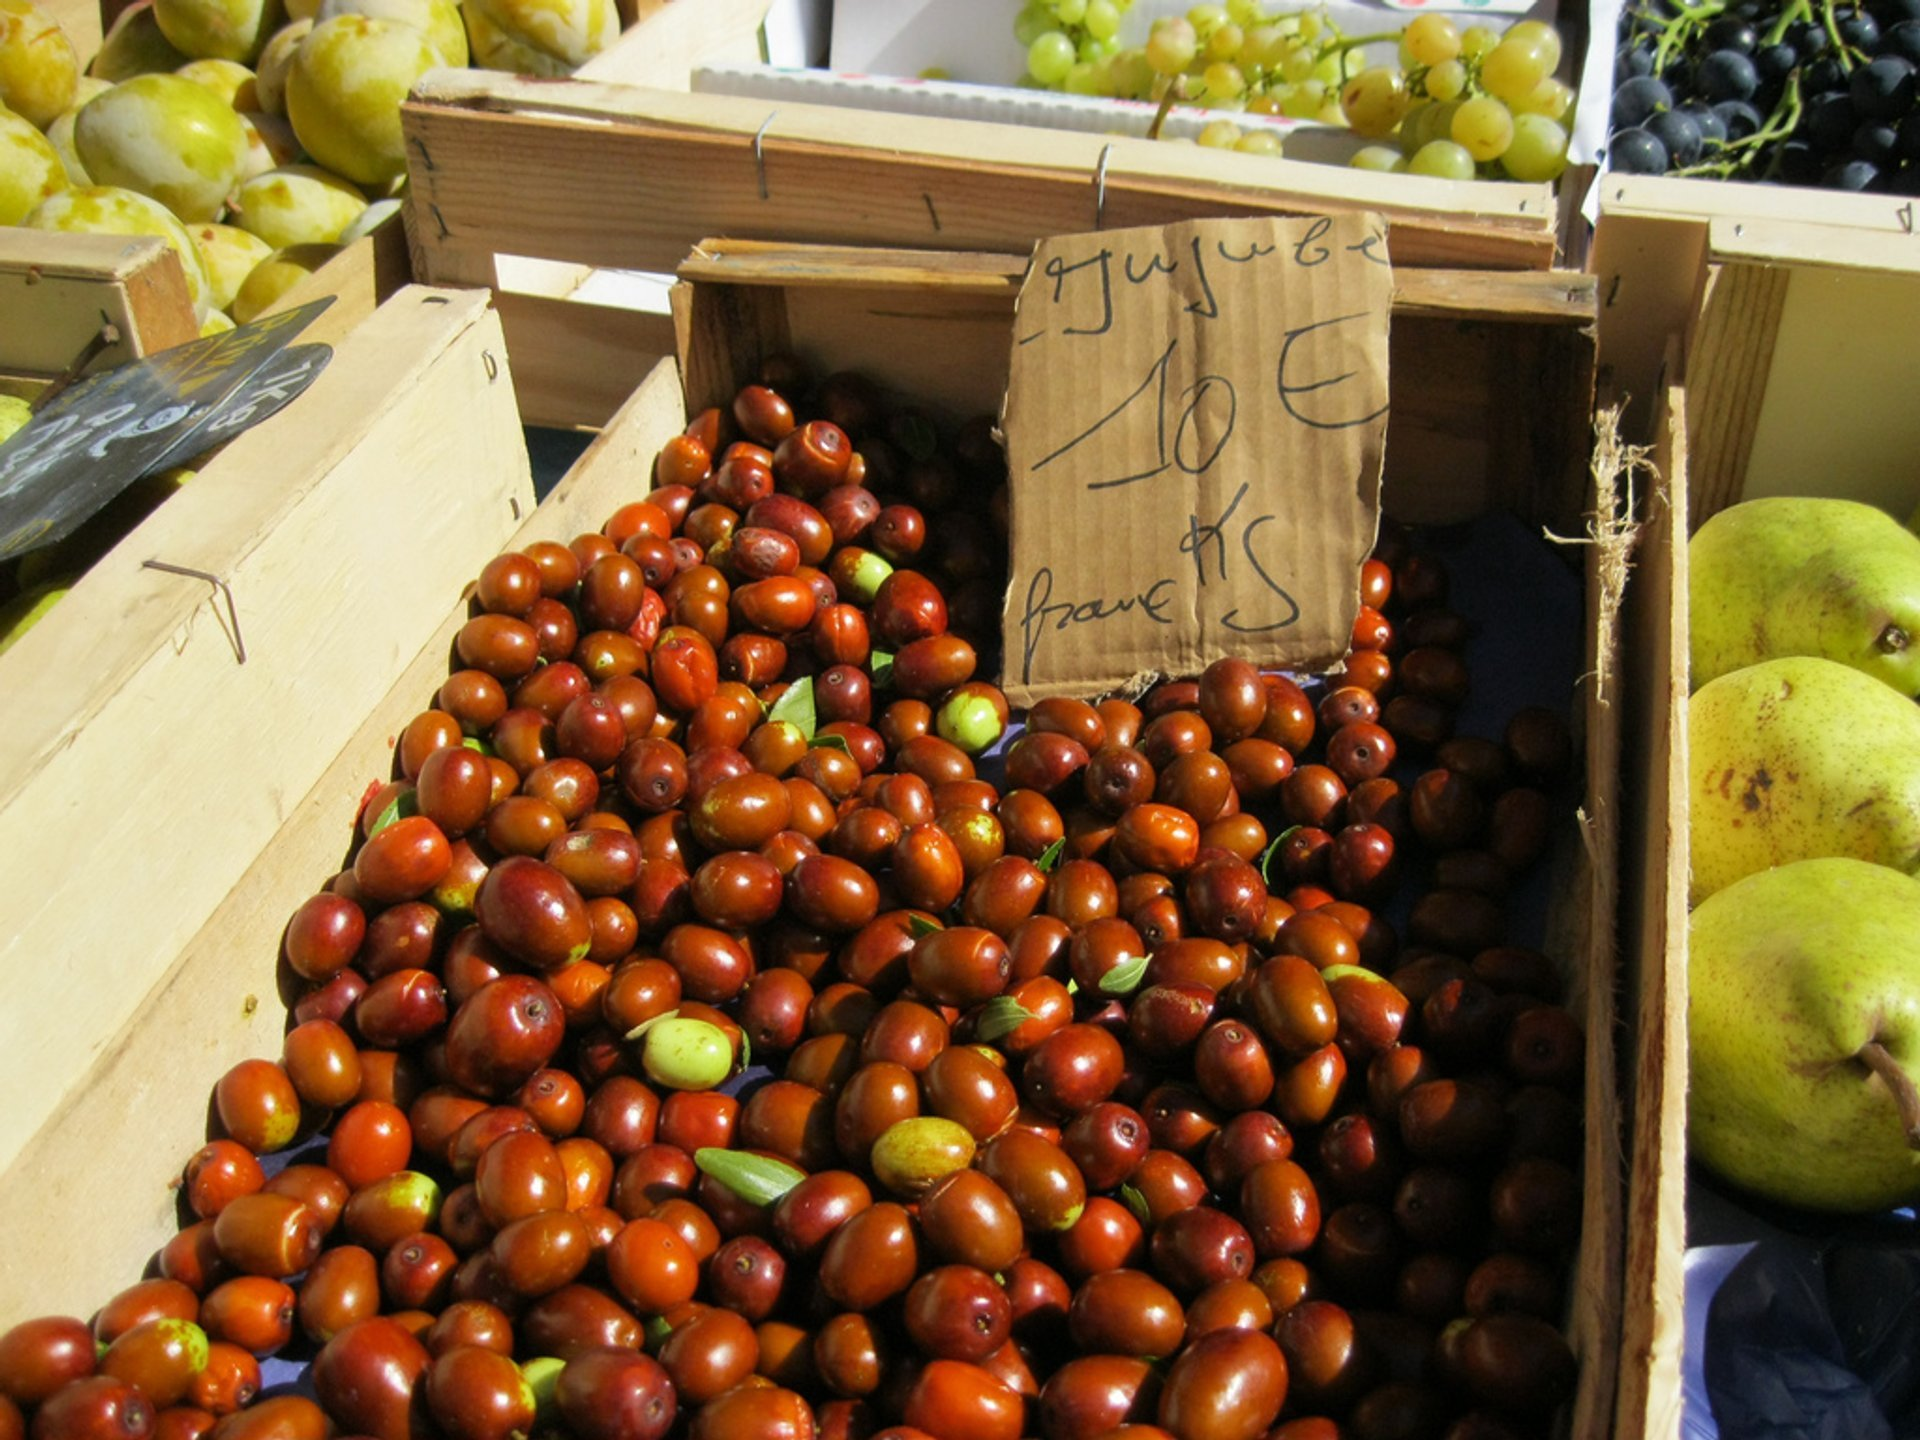 Jujube or Chinese Dates in Croatia 2020 - Best Time